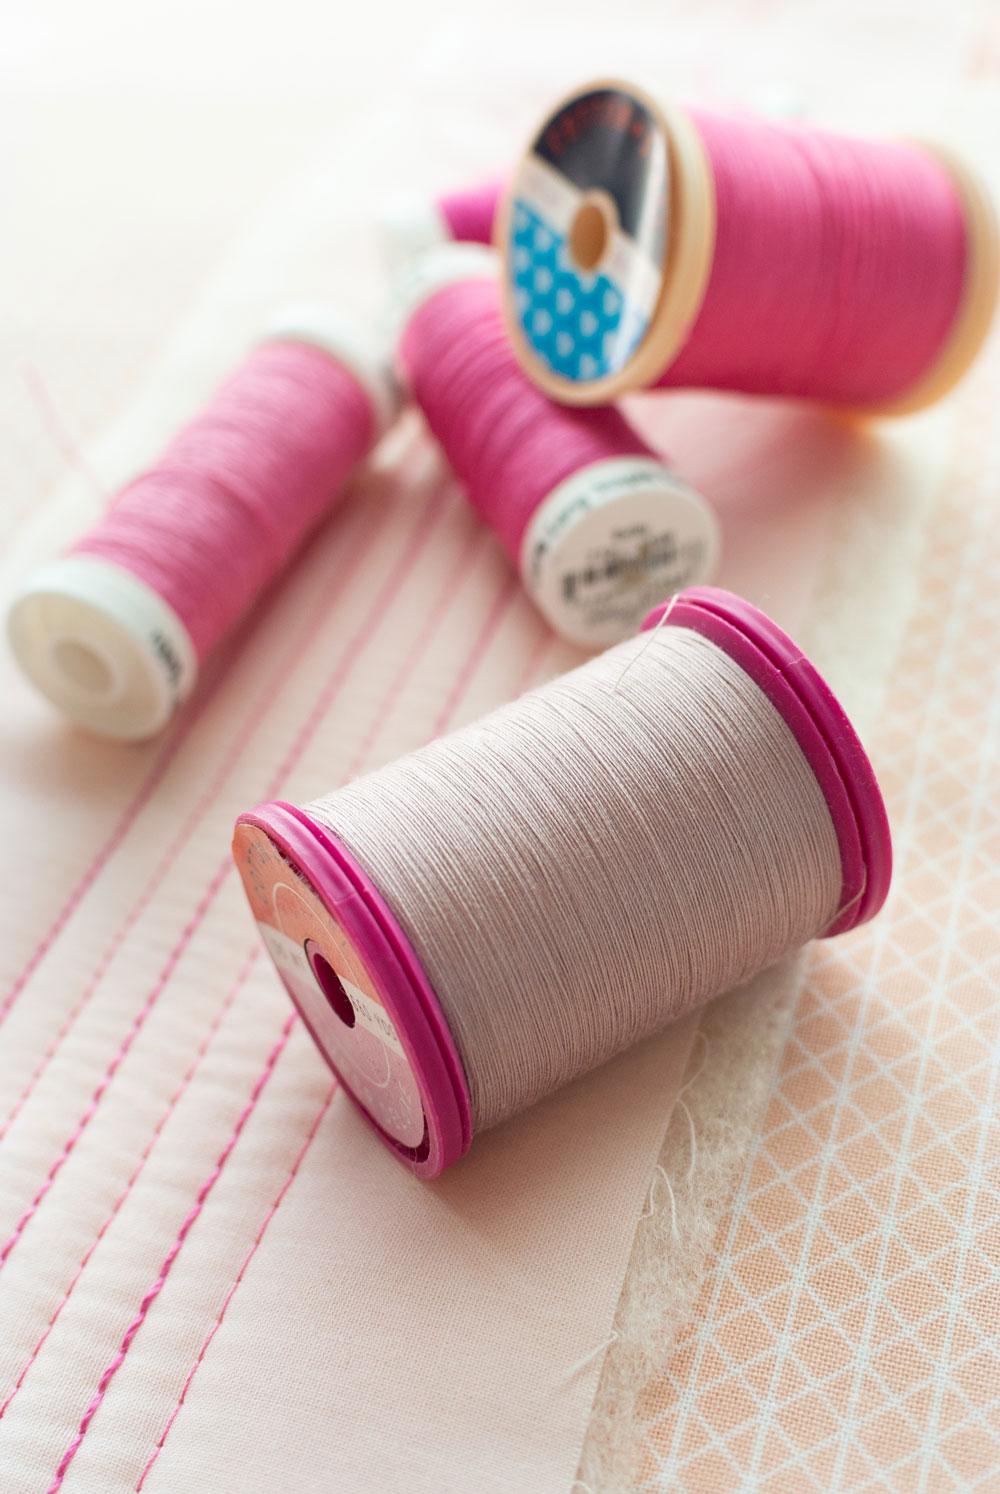 Machine quilting with 12 wt. thread is not hard, but you do need to know a few things. Here are 5 secrets to machine quilting with 12 weight thread!